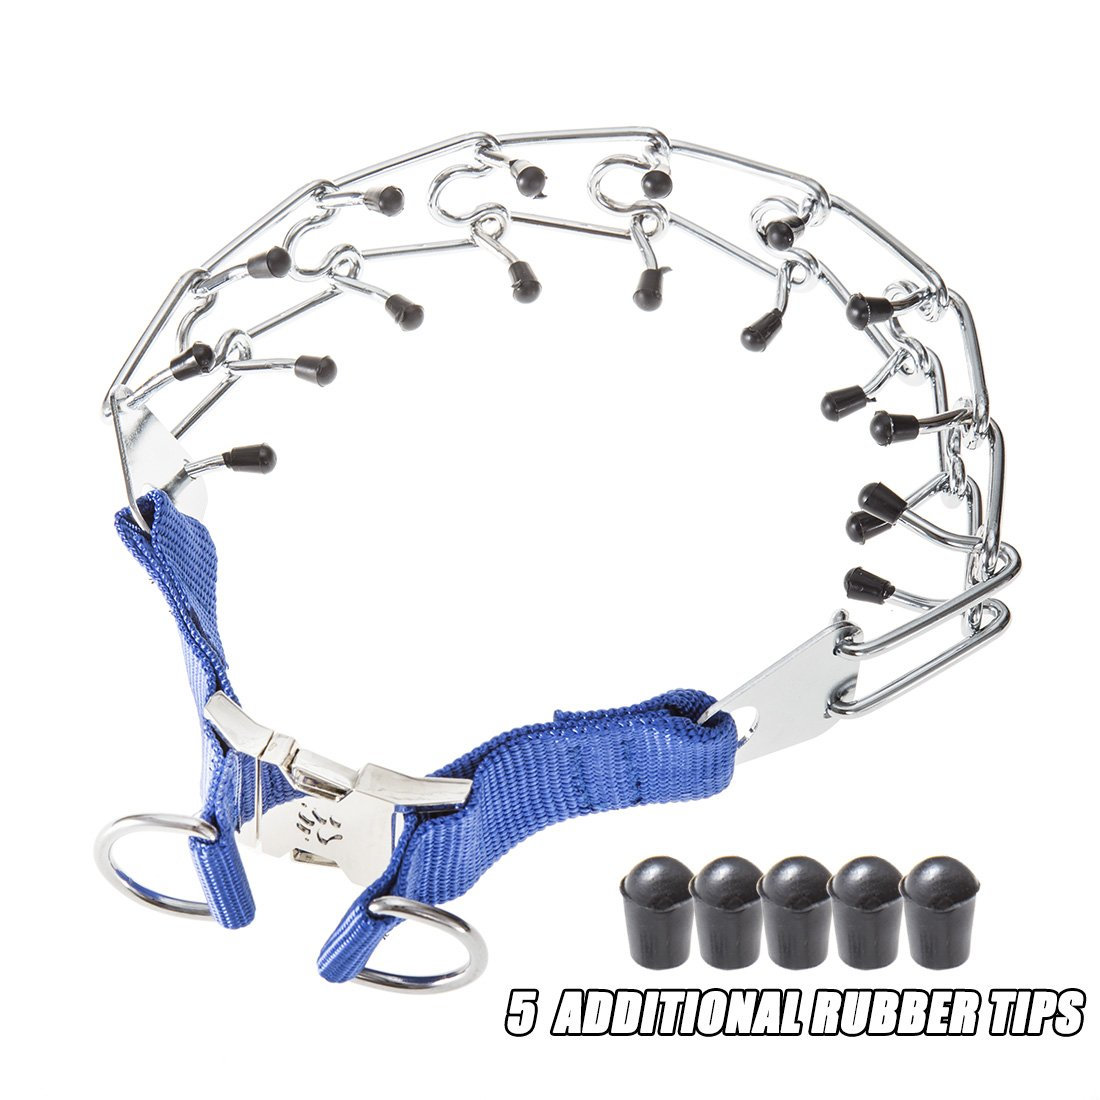 GAITY PET Dog Prong Collar Training Metal Gear Pinch For Dogs With Quick Release Snap Buckle And Rubber Tips, Blue